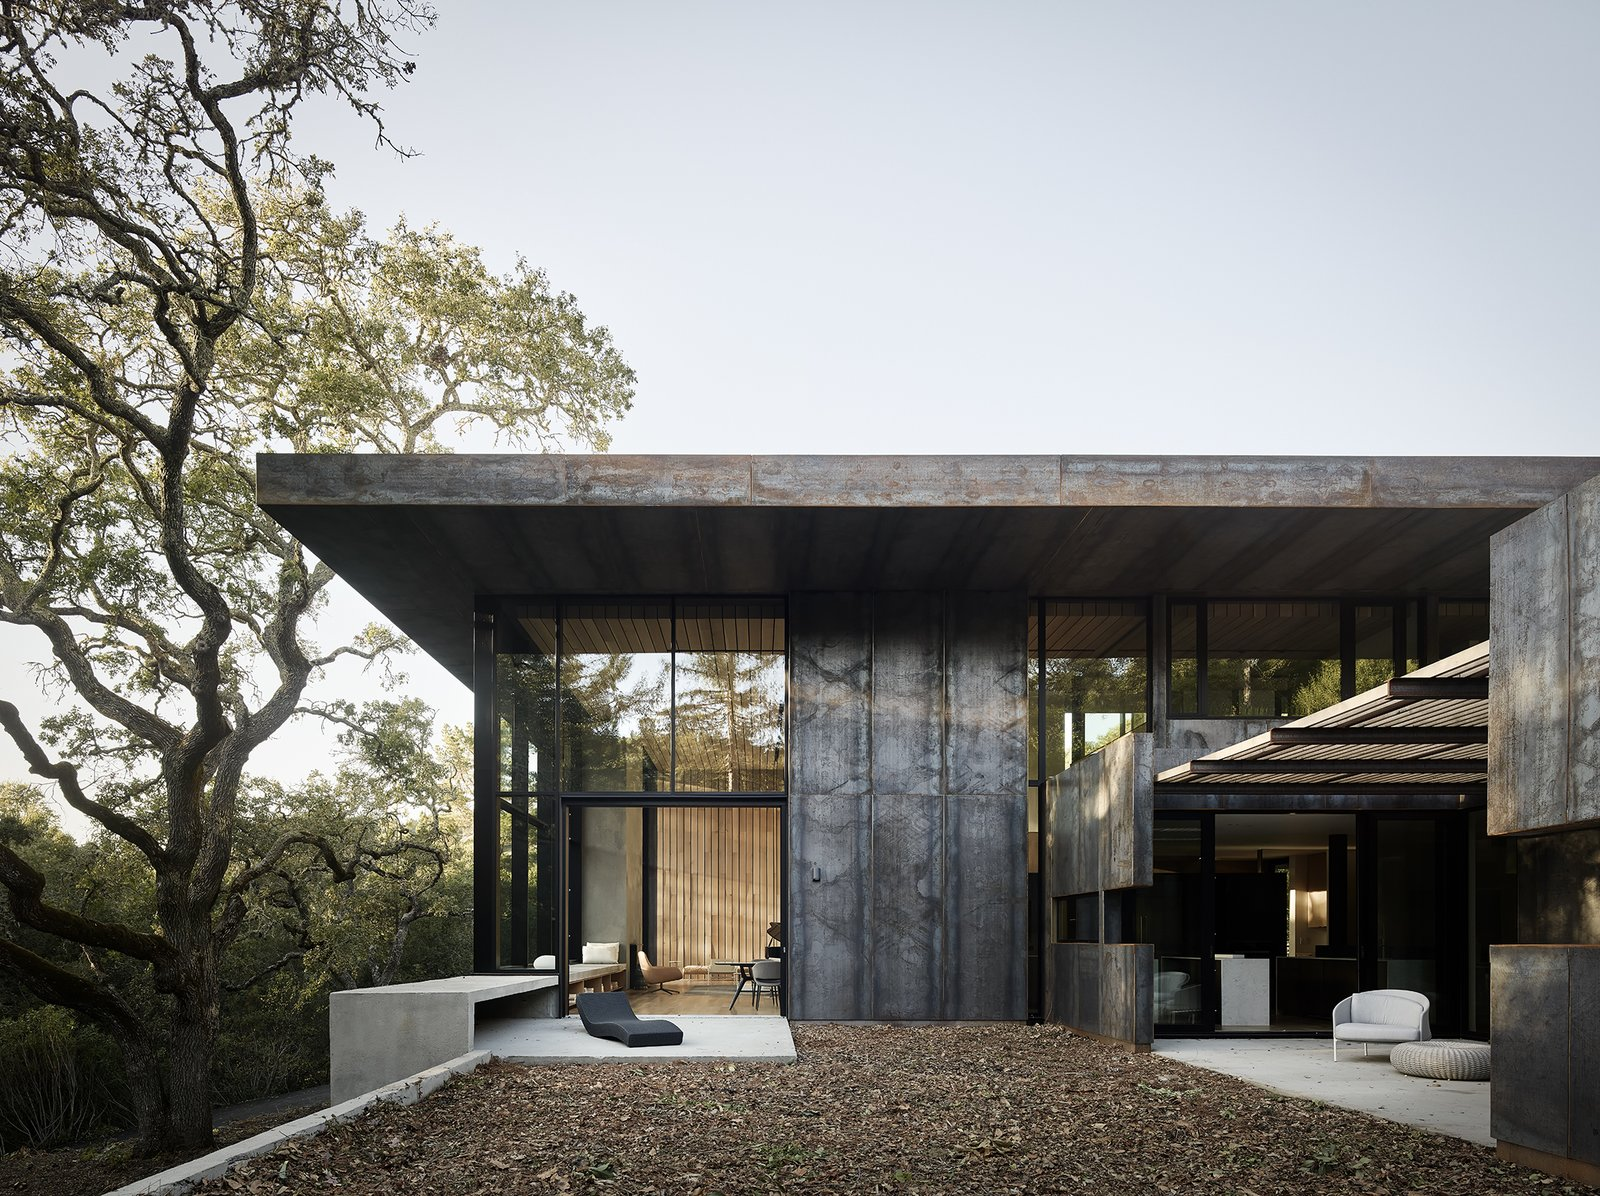 Exterior, House Building Type, Metal Roof Material, Metal Siding Material, and Flat RoofLine Located in Orinda, California, a three-bedroom house by architect Greg Faulkner took its first aesthetic cue from a large oak tree on the site. Cor-Ten steel panels clad the exterior, while white oak offers a material counterpoint on the interior. A 12-foot-wide sliding pocket wall opens the living/dining area to a terrace with a Wave Chaise longue by Paola Lenti. The landscape design is by Thuilot Associates.  Photo 2 of 14 in Nature Drove the Design of This Sculptural, Cor-Ten Steel House in Northern California